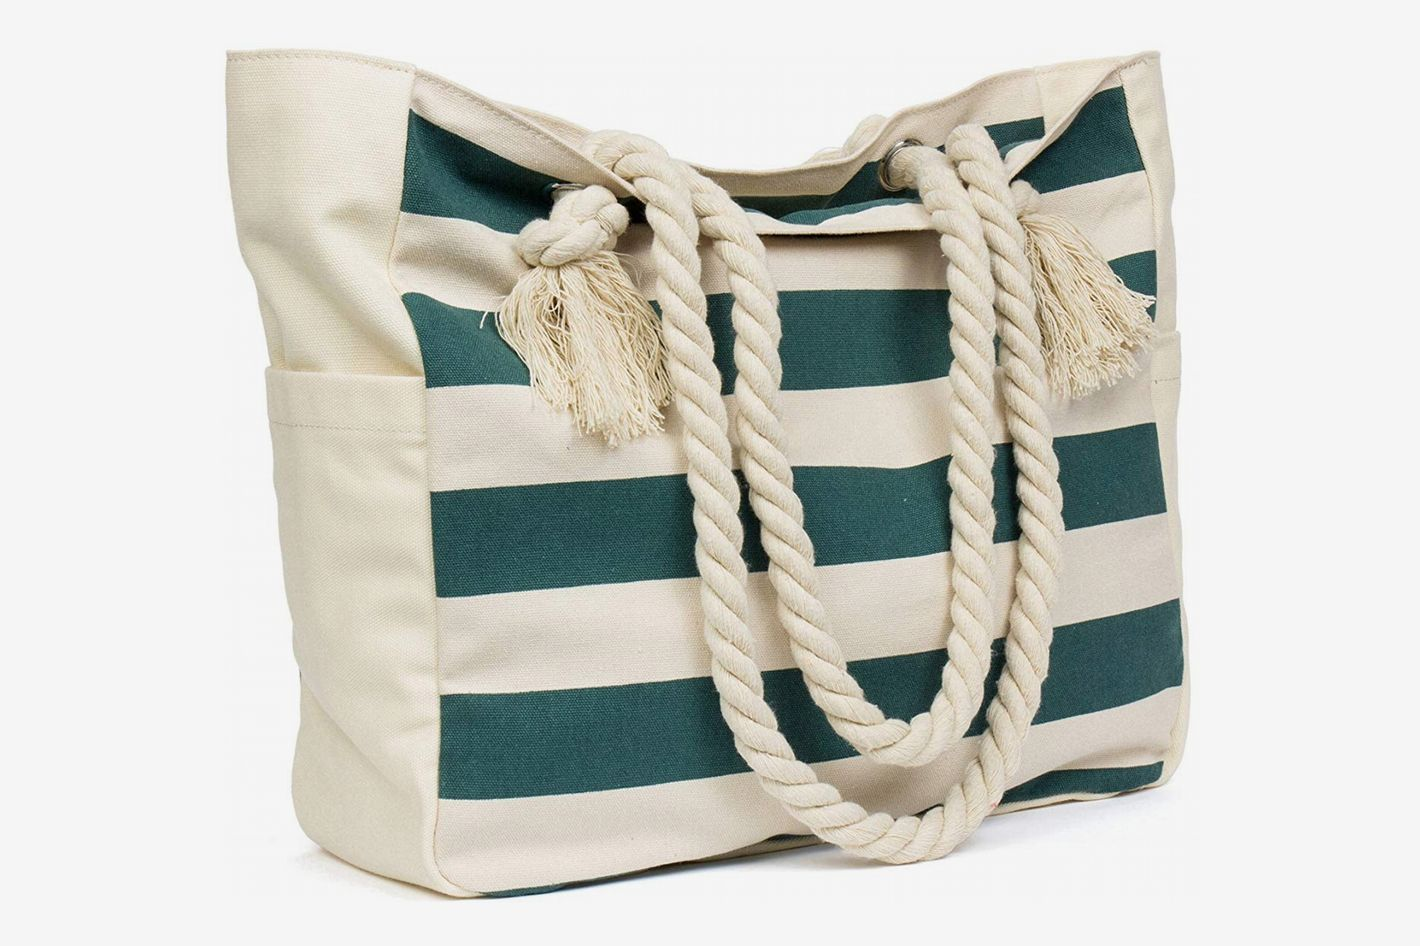 Malirona Large Beach Bag with Cotton Rope Handle